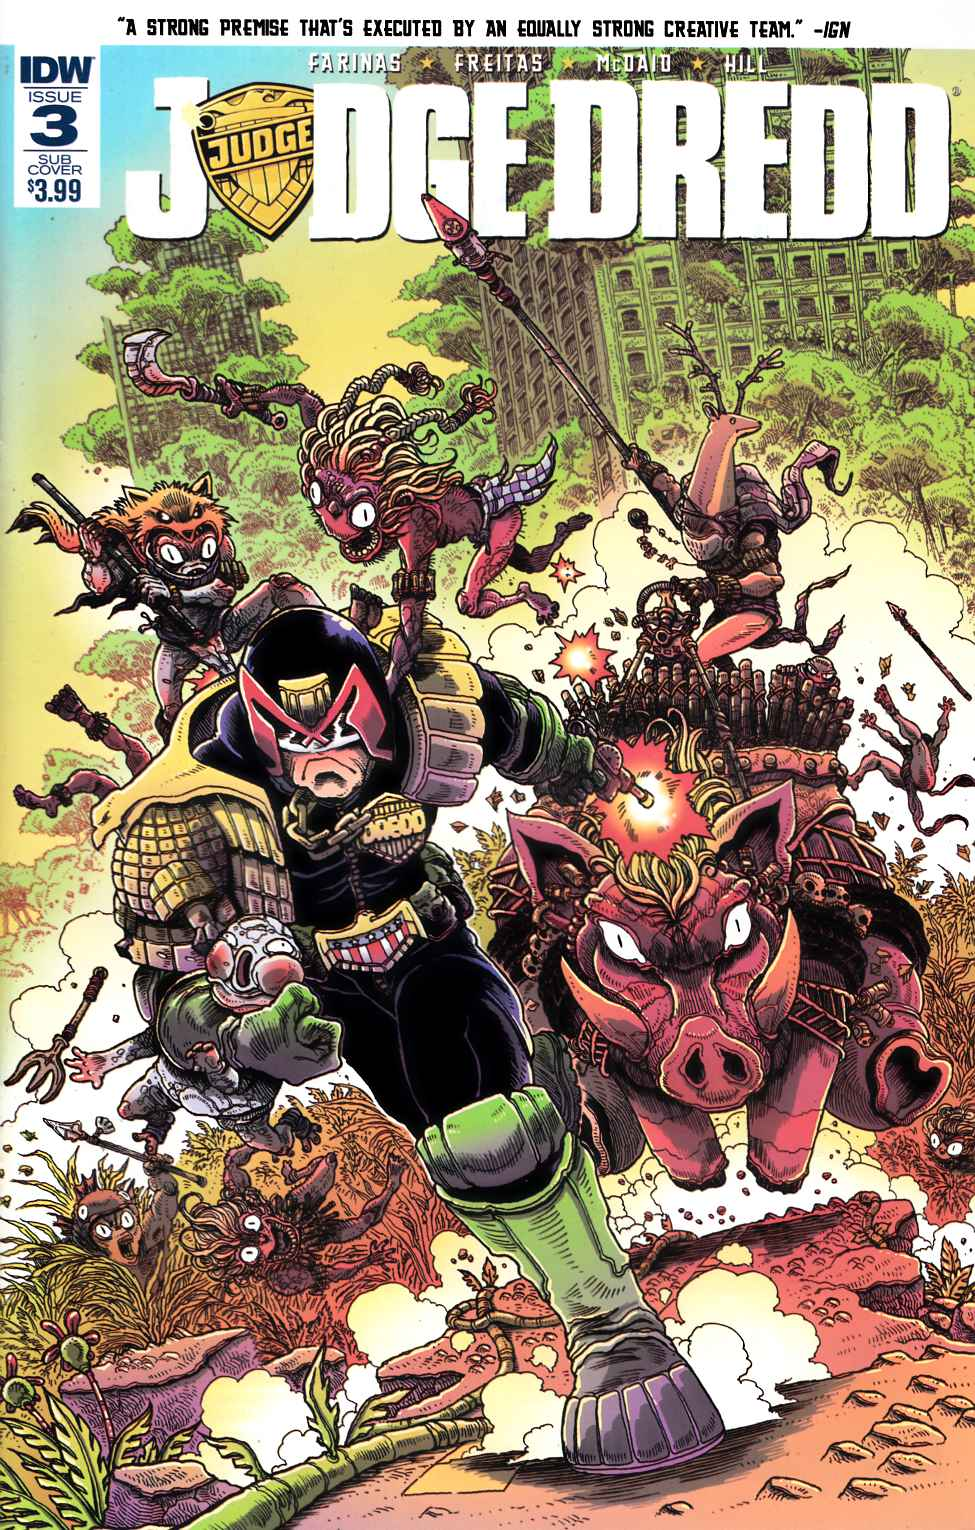 Judge Dredd (Ongoing) #3 Subscription Cover [IDW Comic] THUMBNAIL